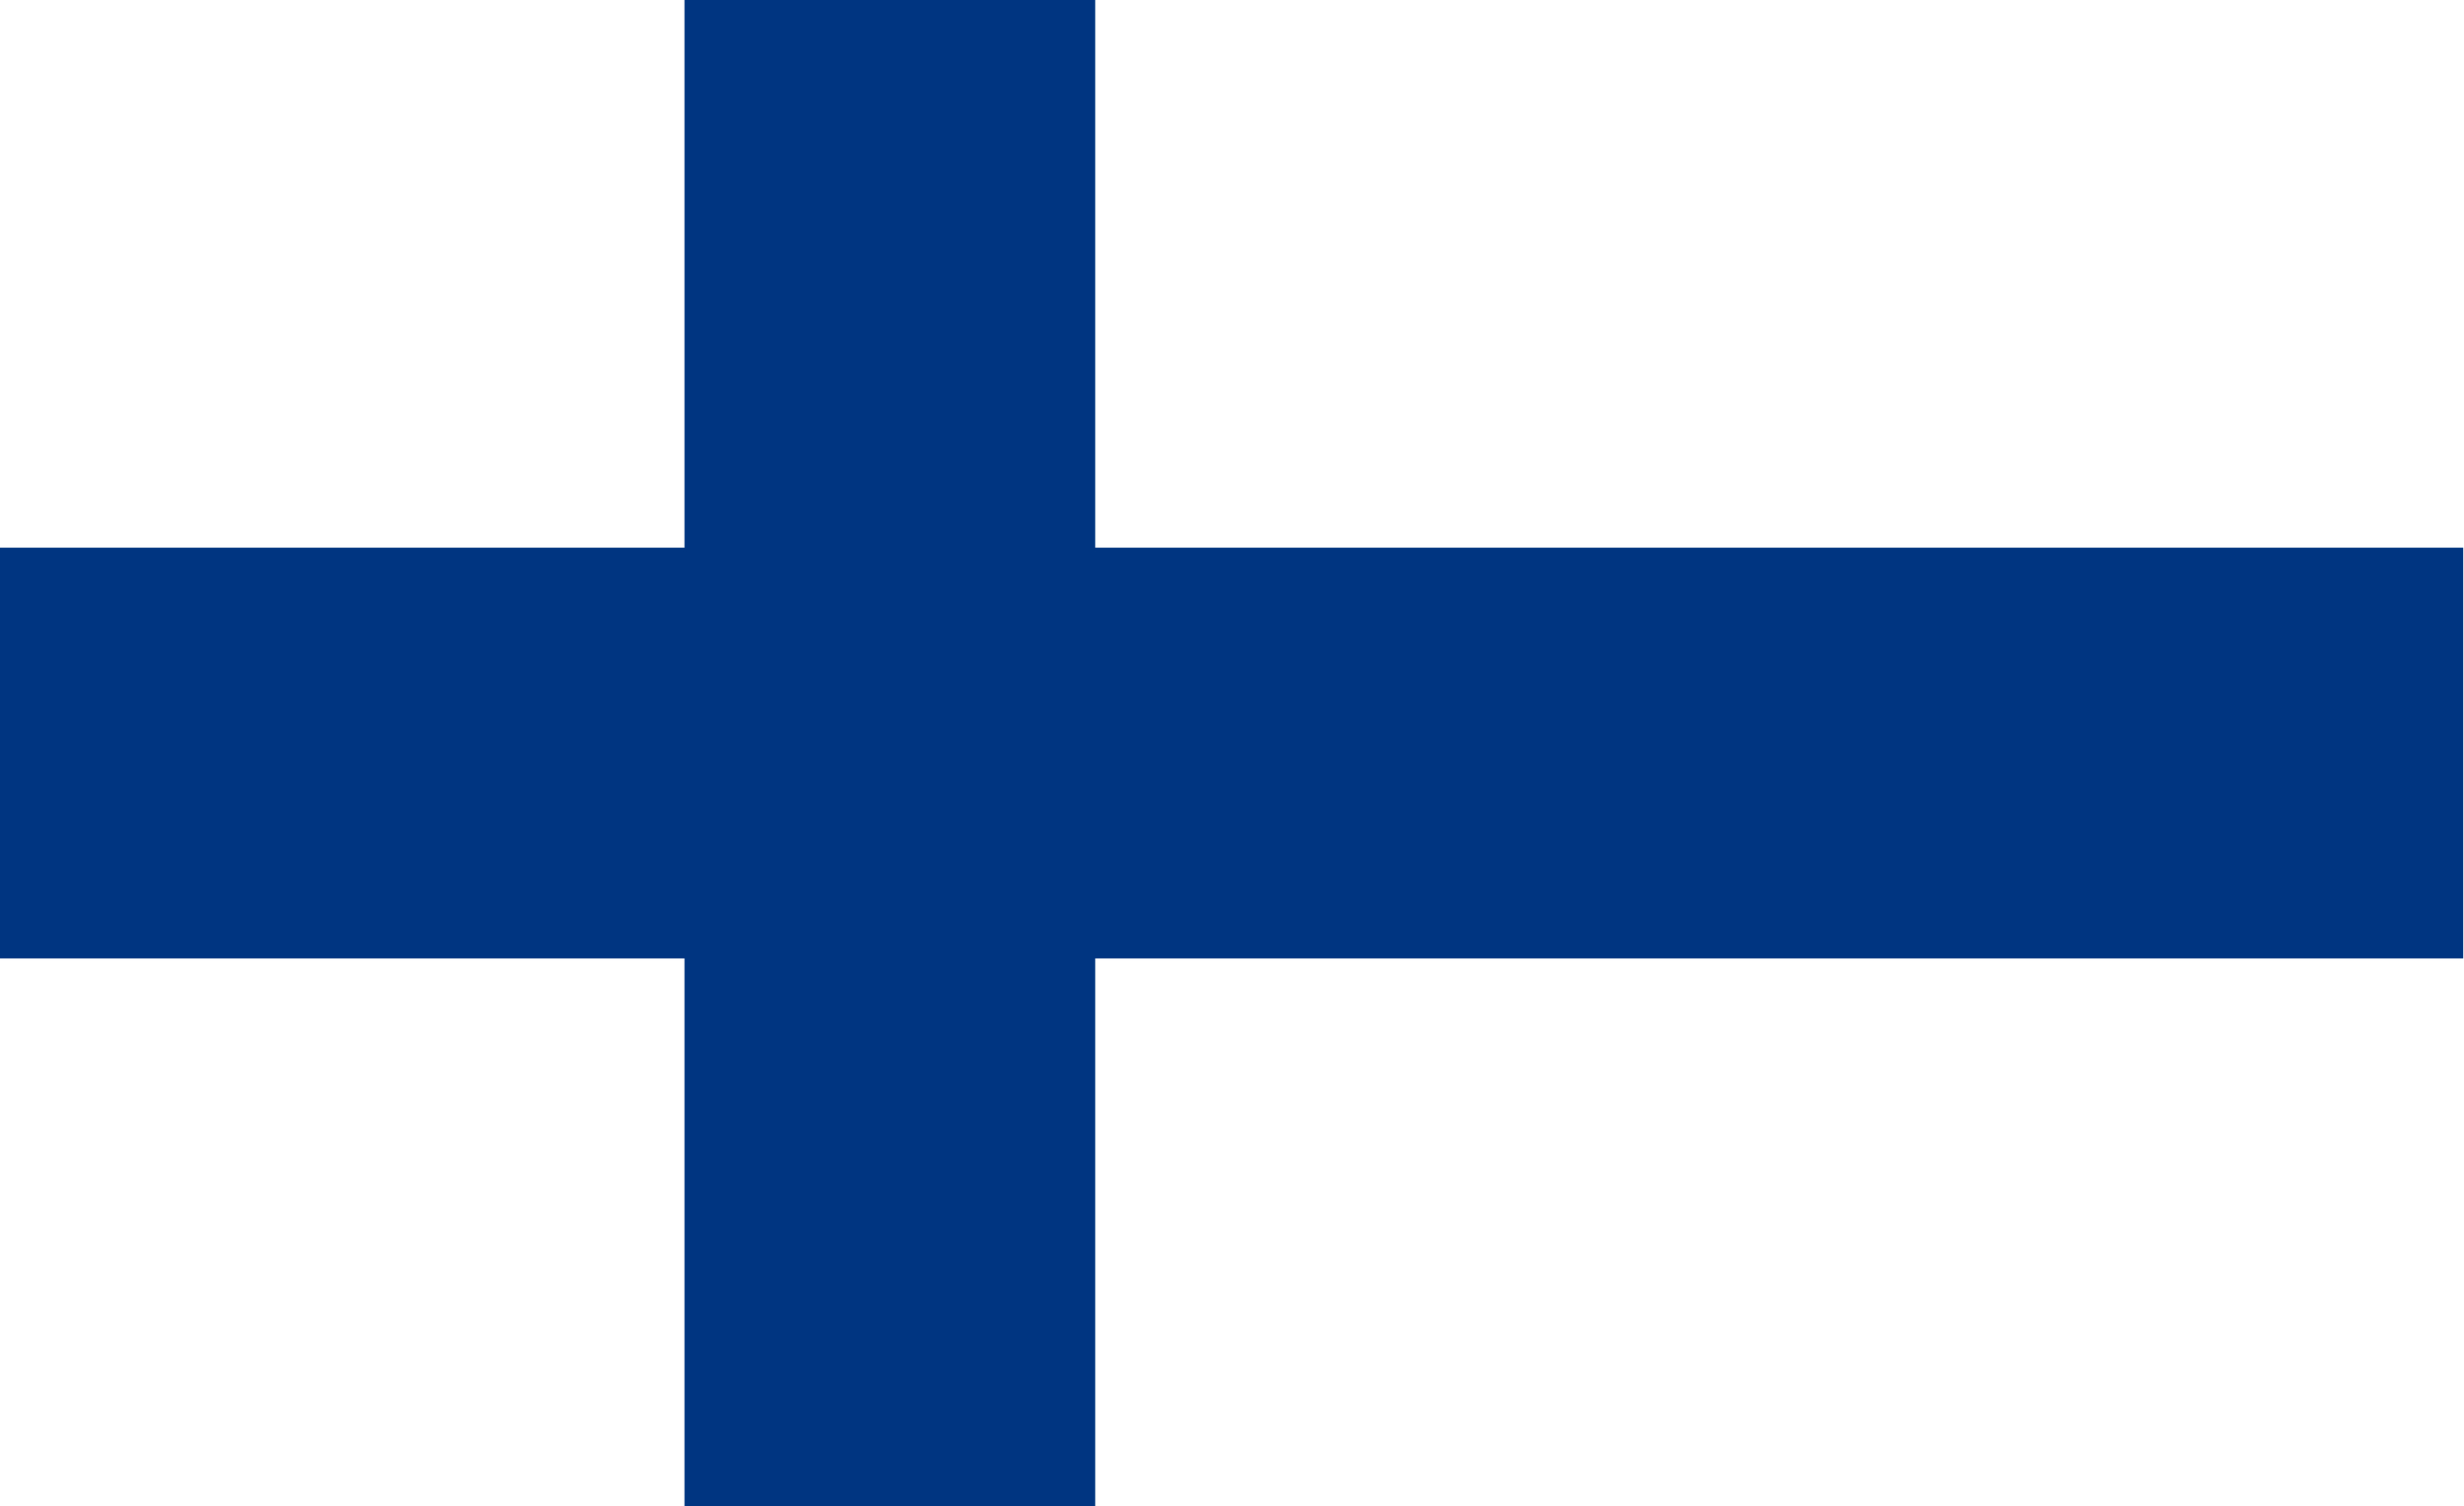 The National Flag of Finland features a white background with a blue cross that extends to the edges of the flag.